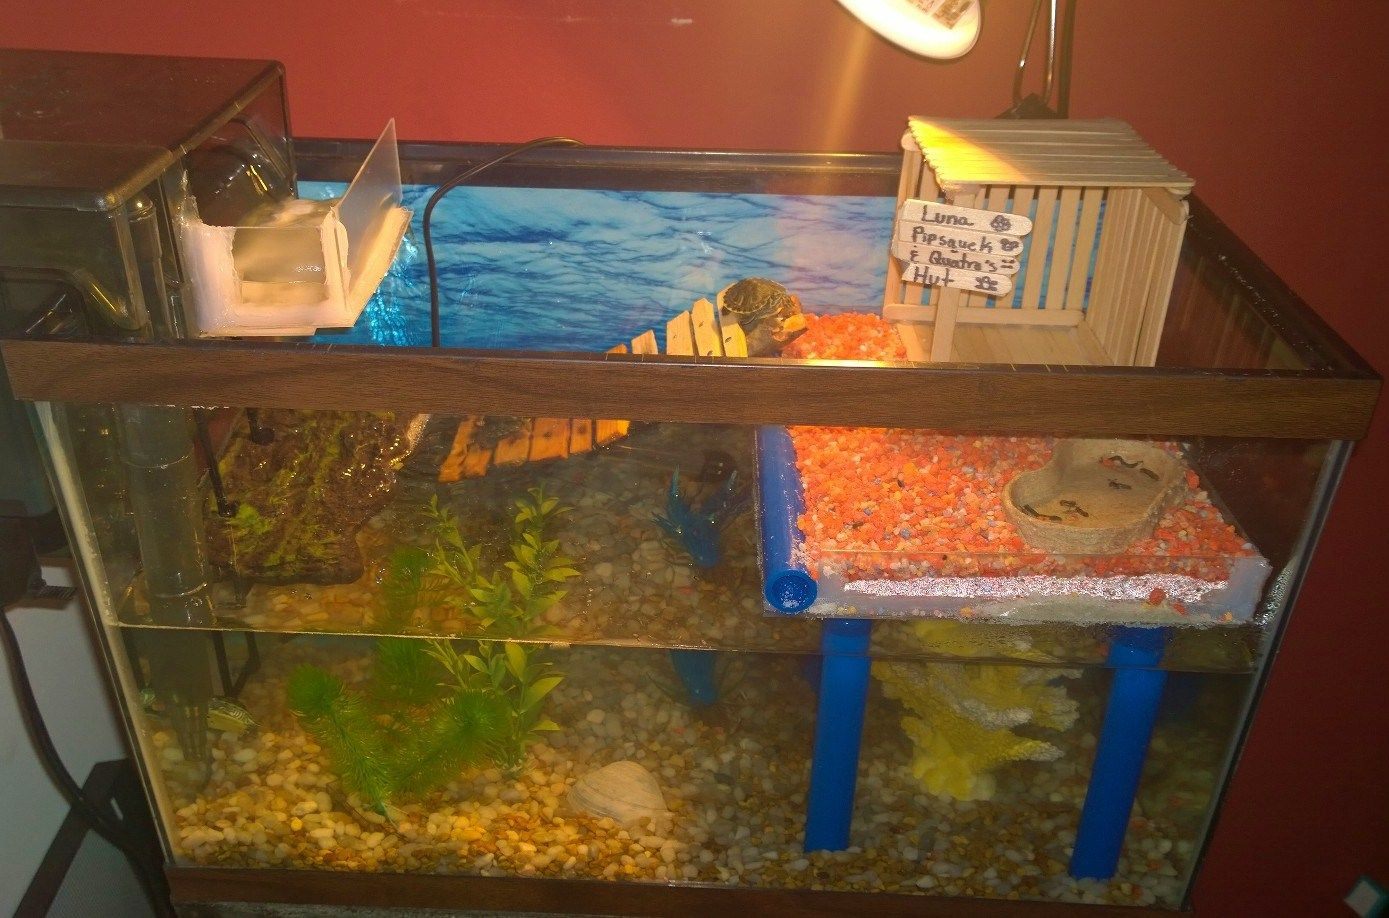 10 Gal Tank For Our 3 Mini Slider Turtles Tank Includes Water Heater And Filter With Diverted Waterfall To Back Wall Turtle Tank Pet Turtle Turtle Habitat